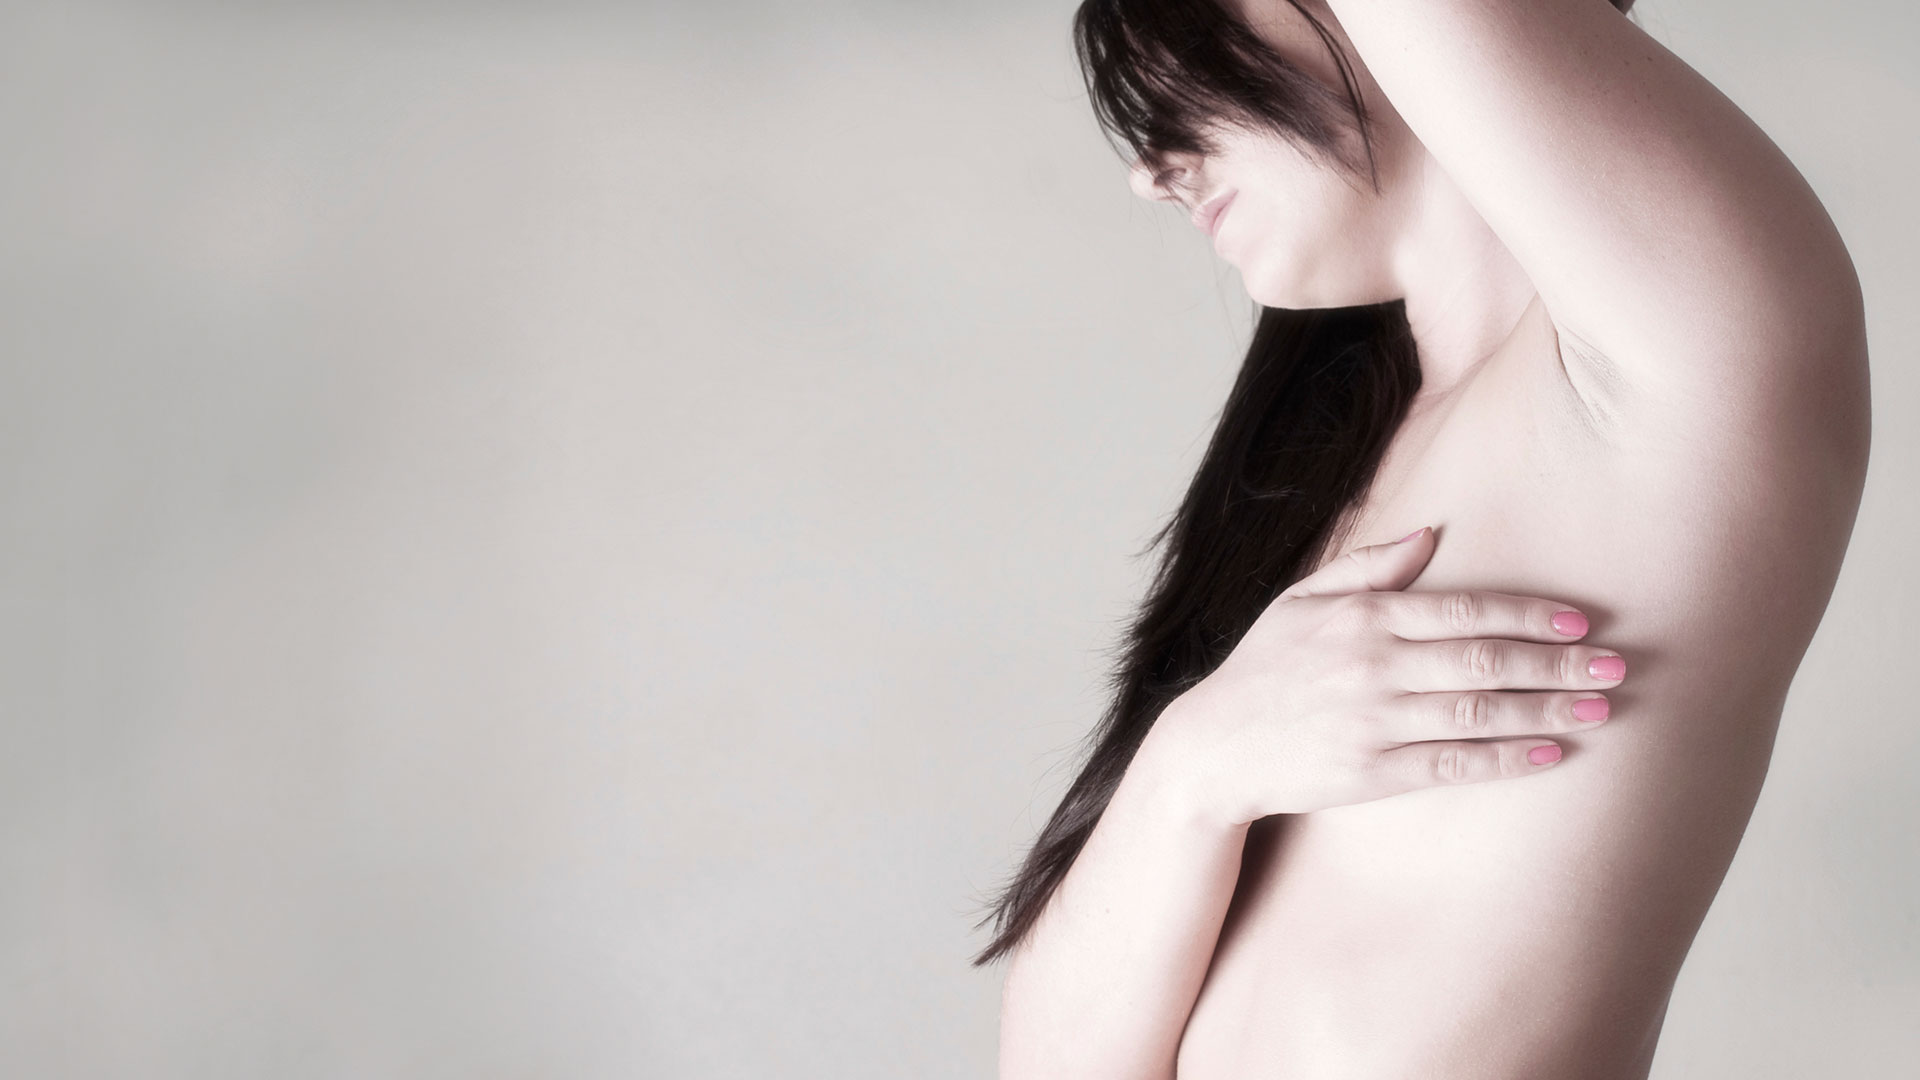 Breast cancer is more common in the left breast than the right